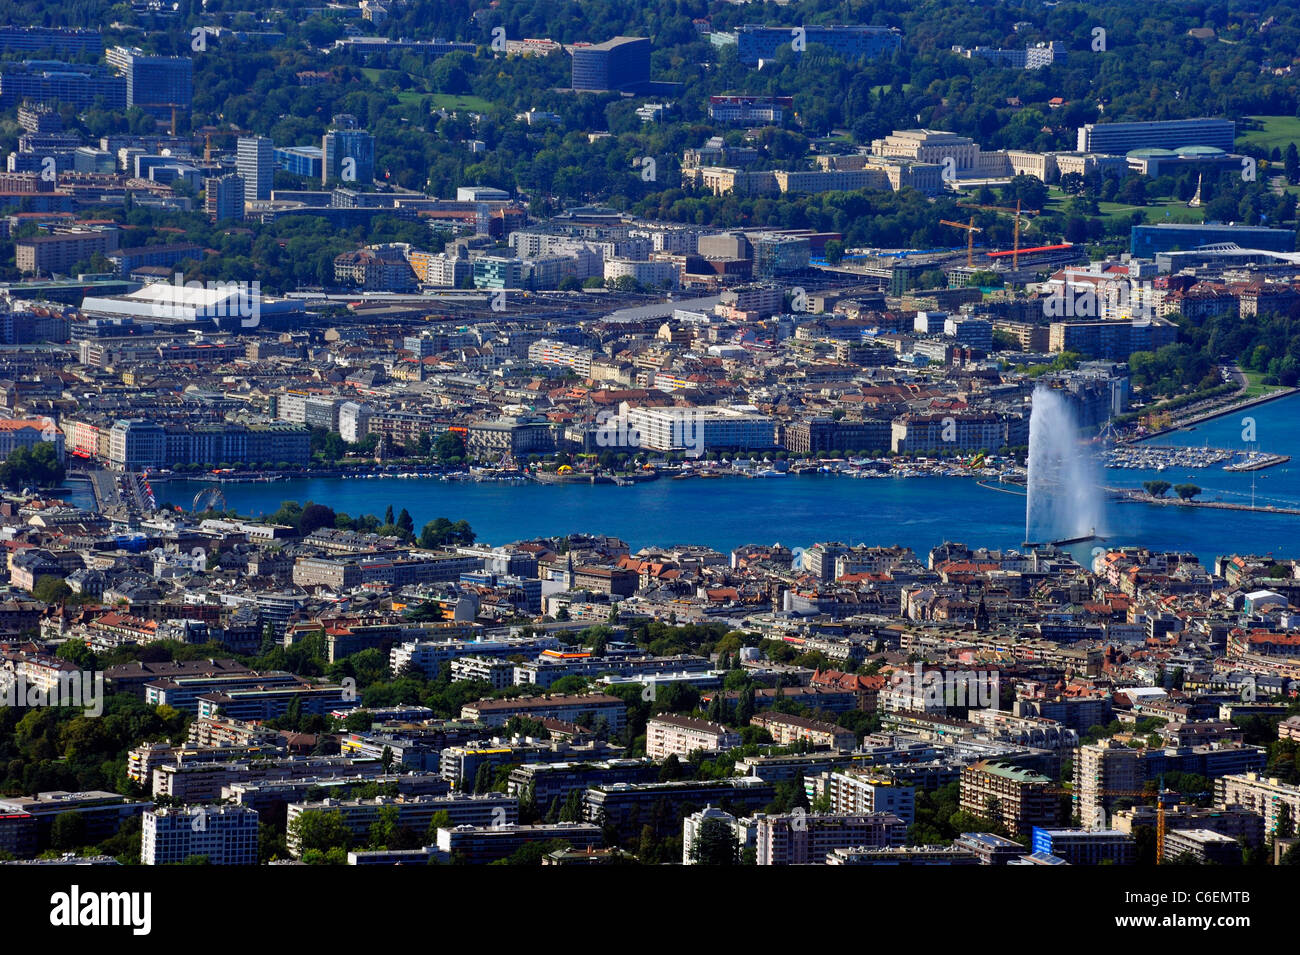 Geneva. View from above 41